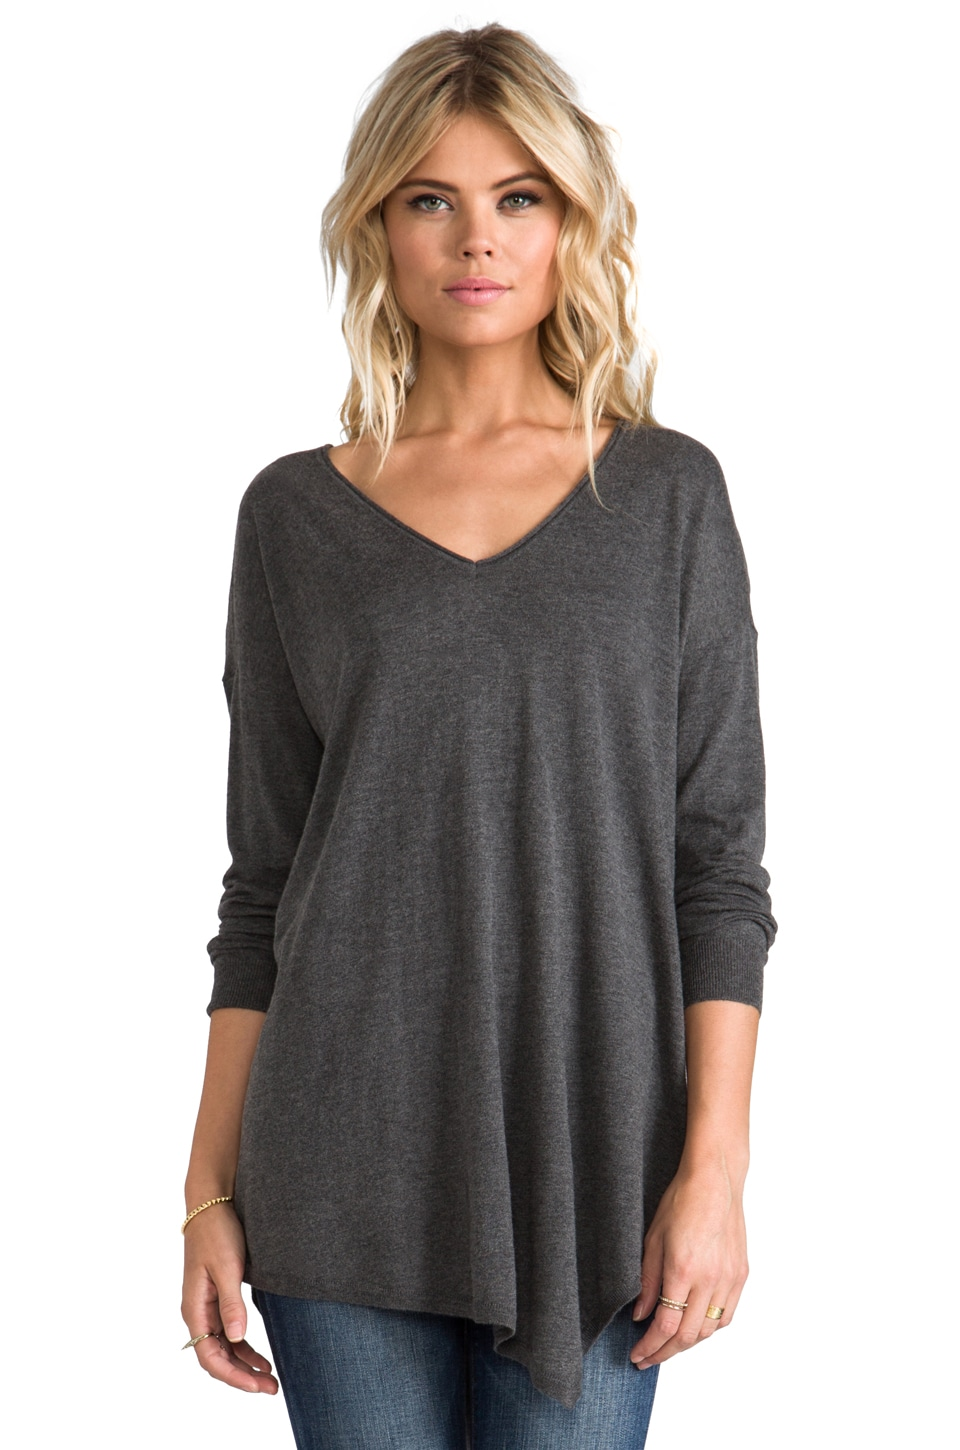 Joie Armelio Sweater in Dark Heather Grey